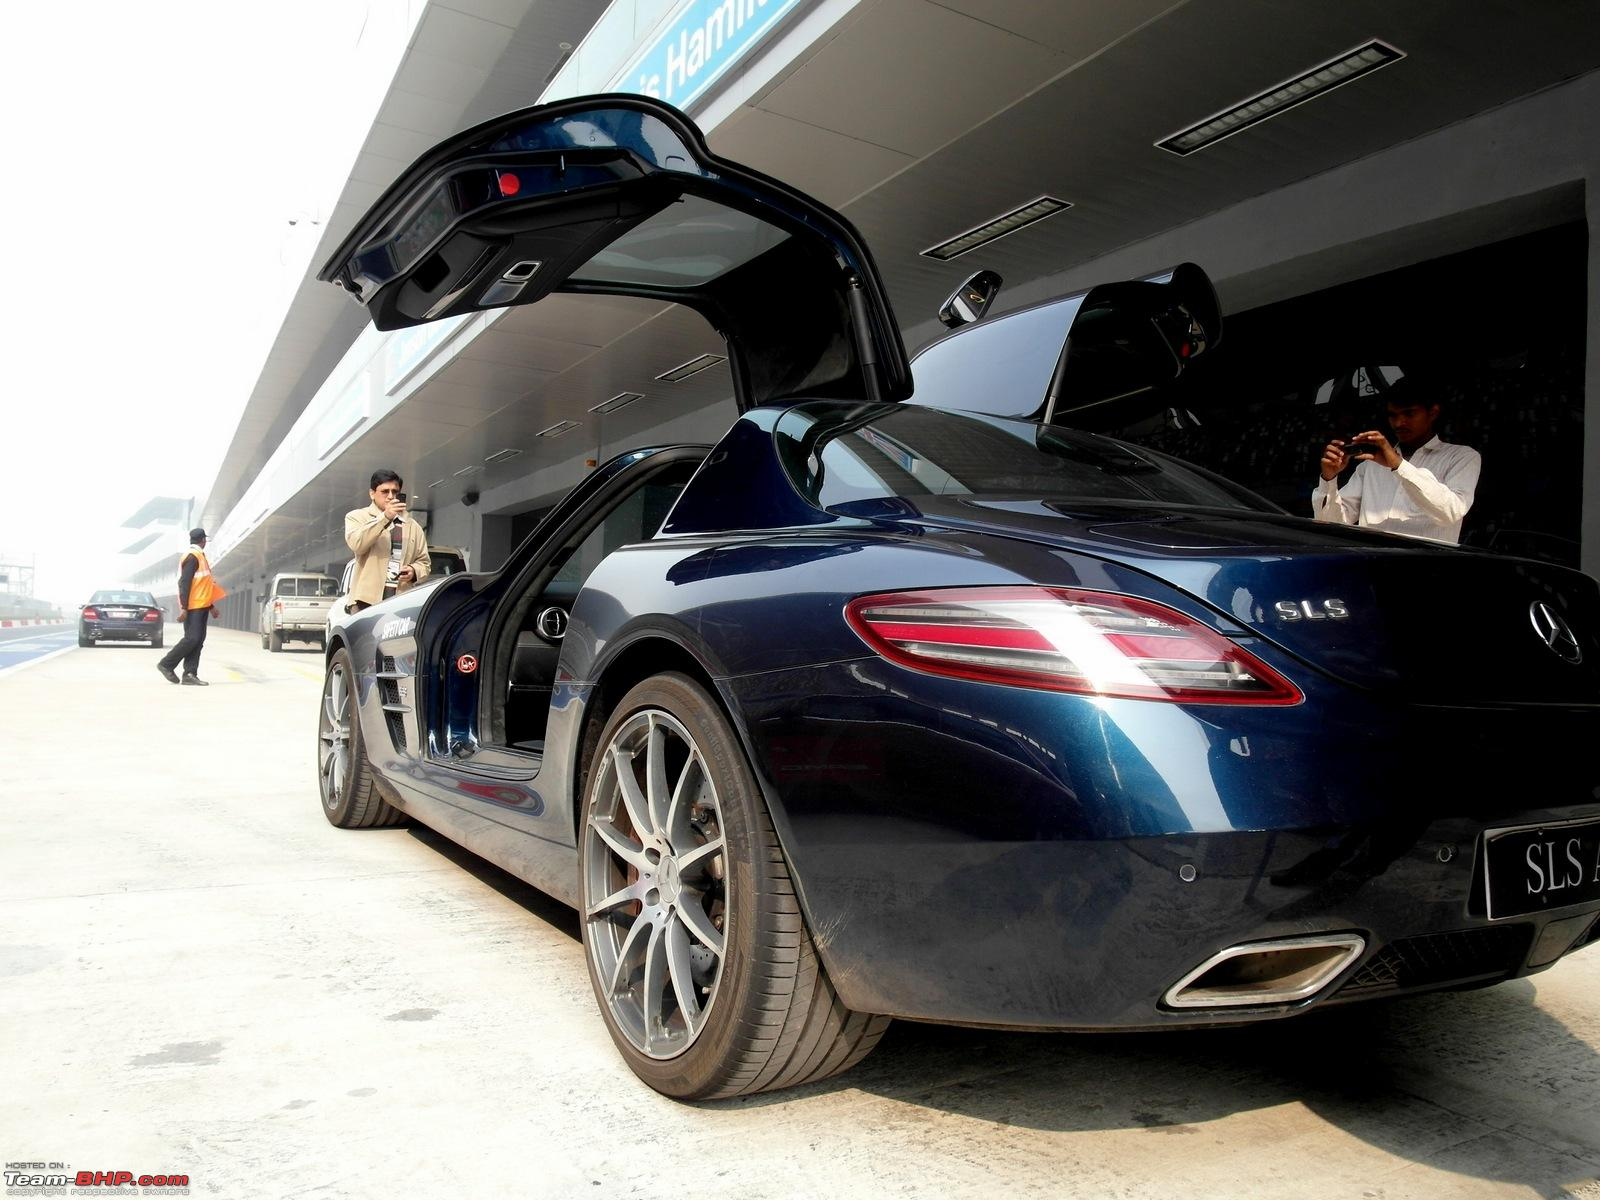 I Drove A C63 Amg At Buddh Mercedes Amg Driving Academy